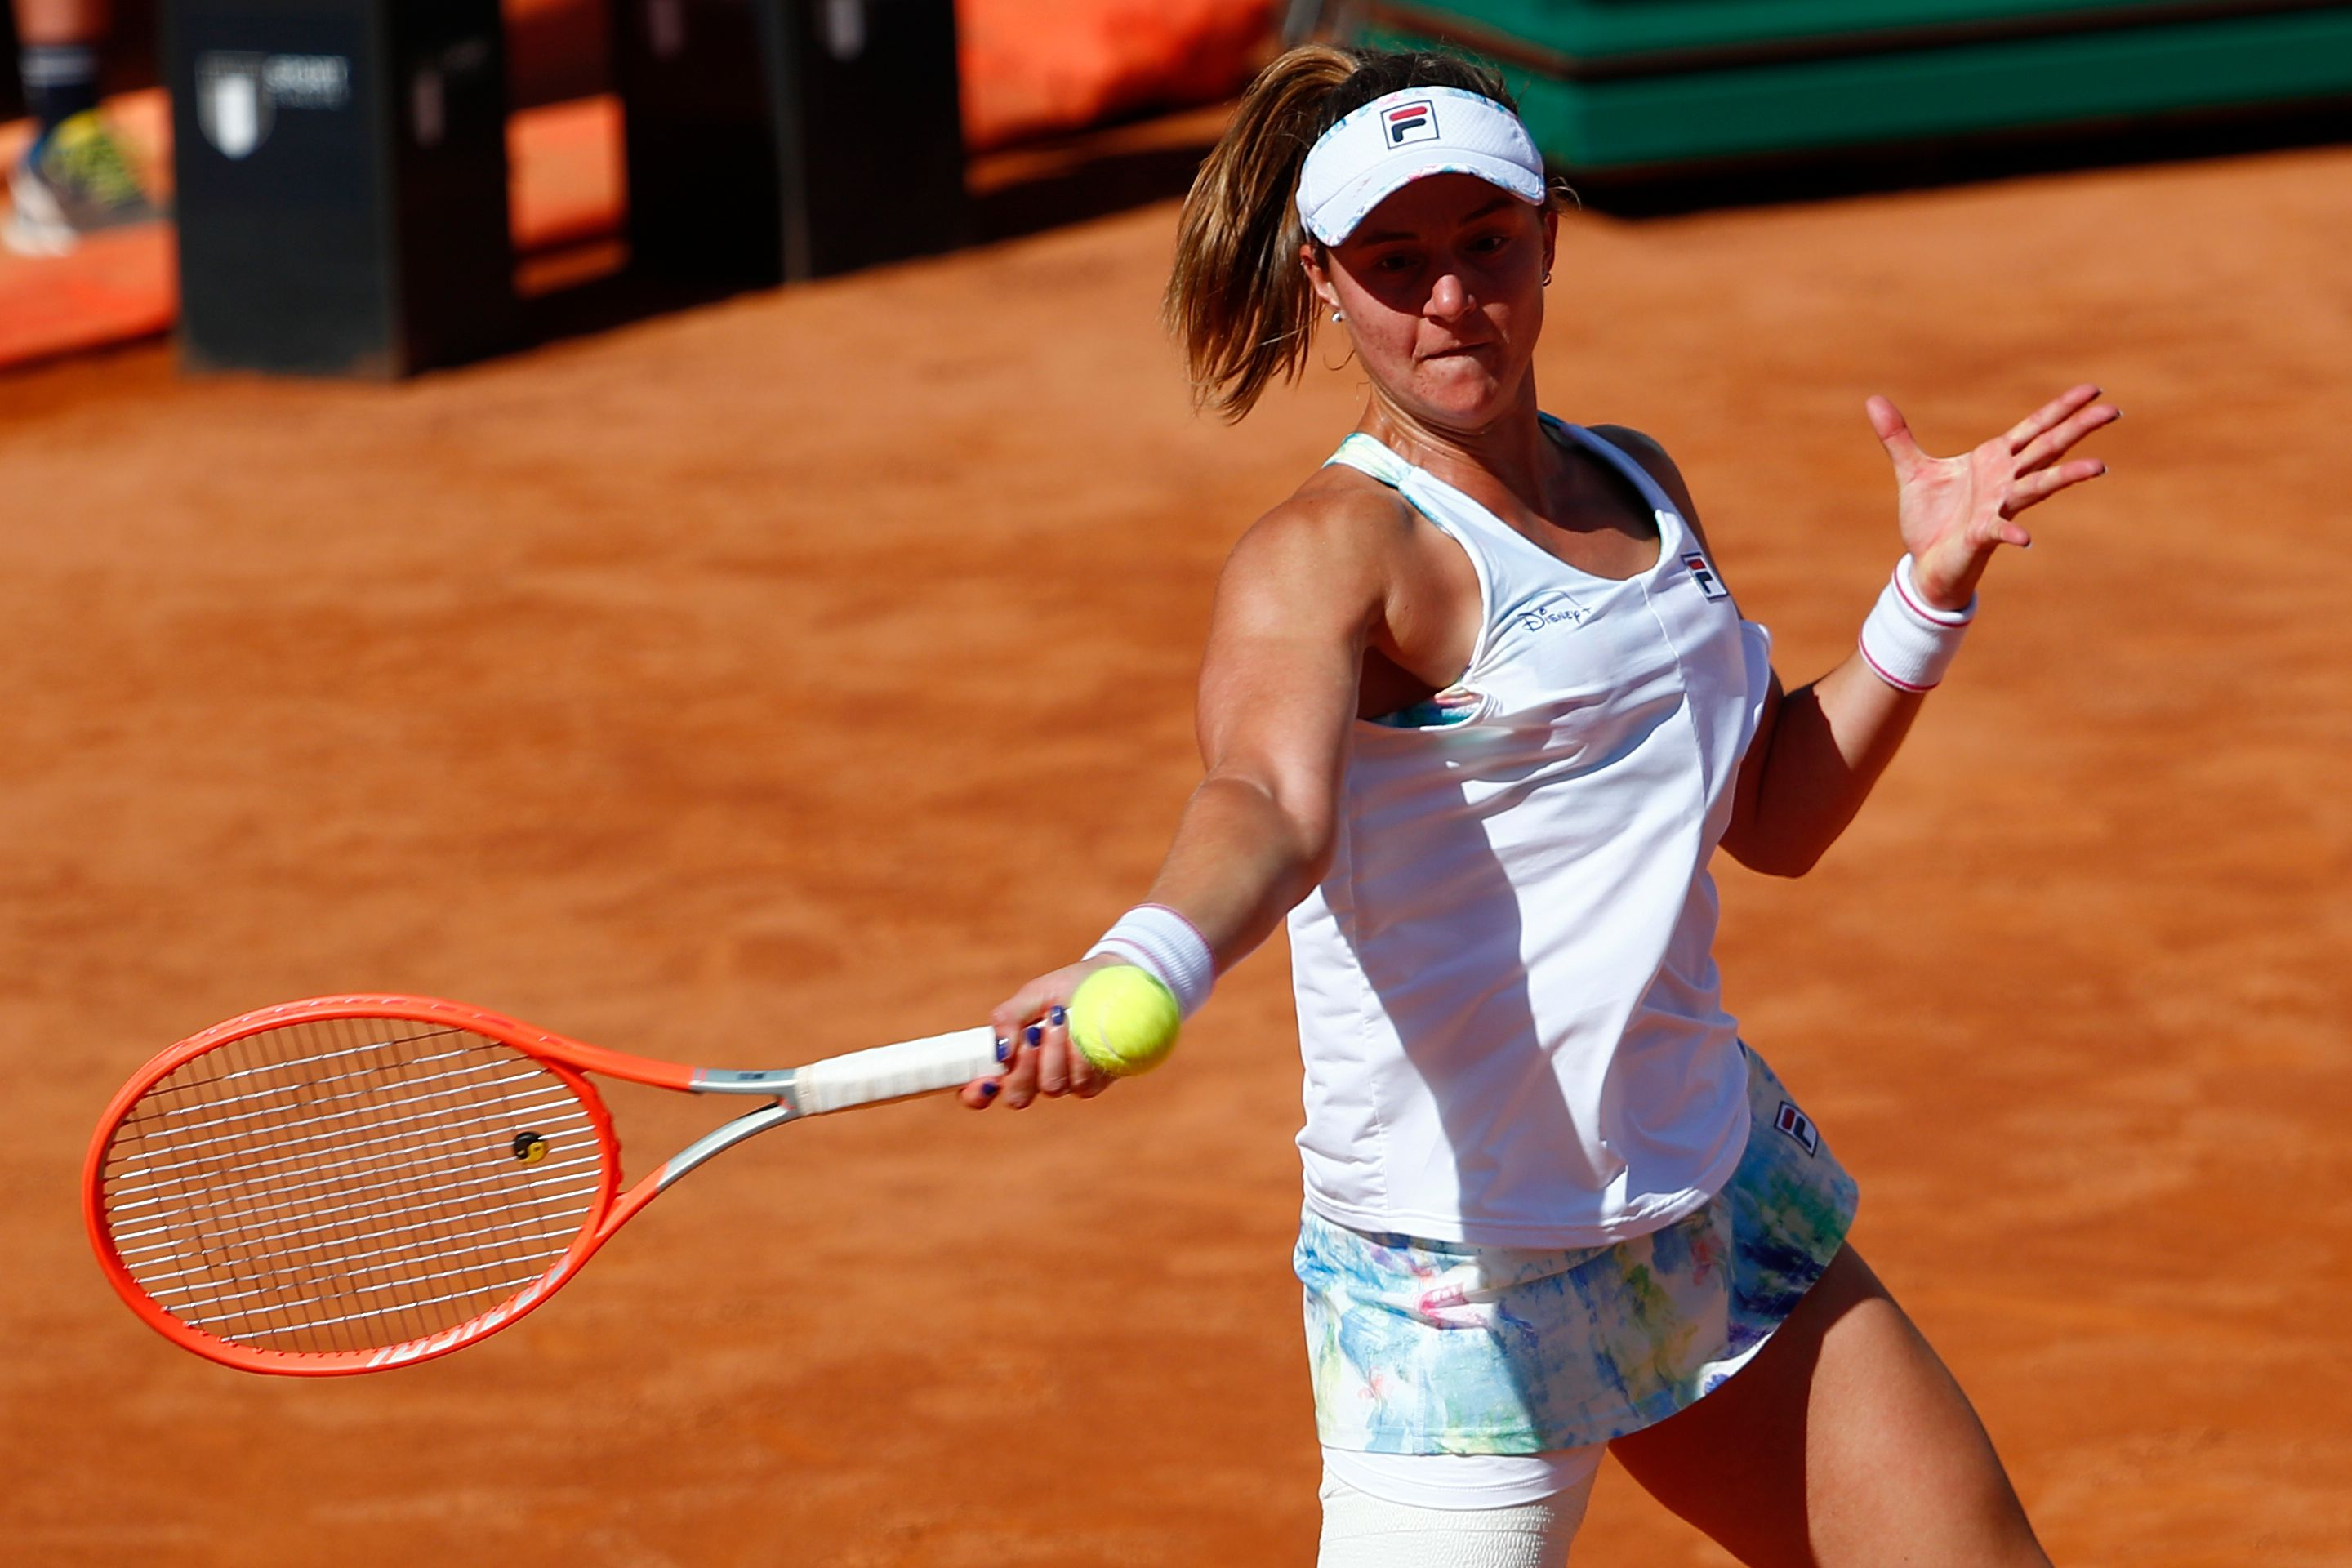 Tennis - WTA Premier 5 - Italian Open - Foro Italico, Rome, Italy - May 12, 2021 Argentina's Nadia Podoroska in action during her second round match against Serena Williams of the U.S. REUTERS/Guglielmo Mangiapane